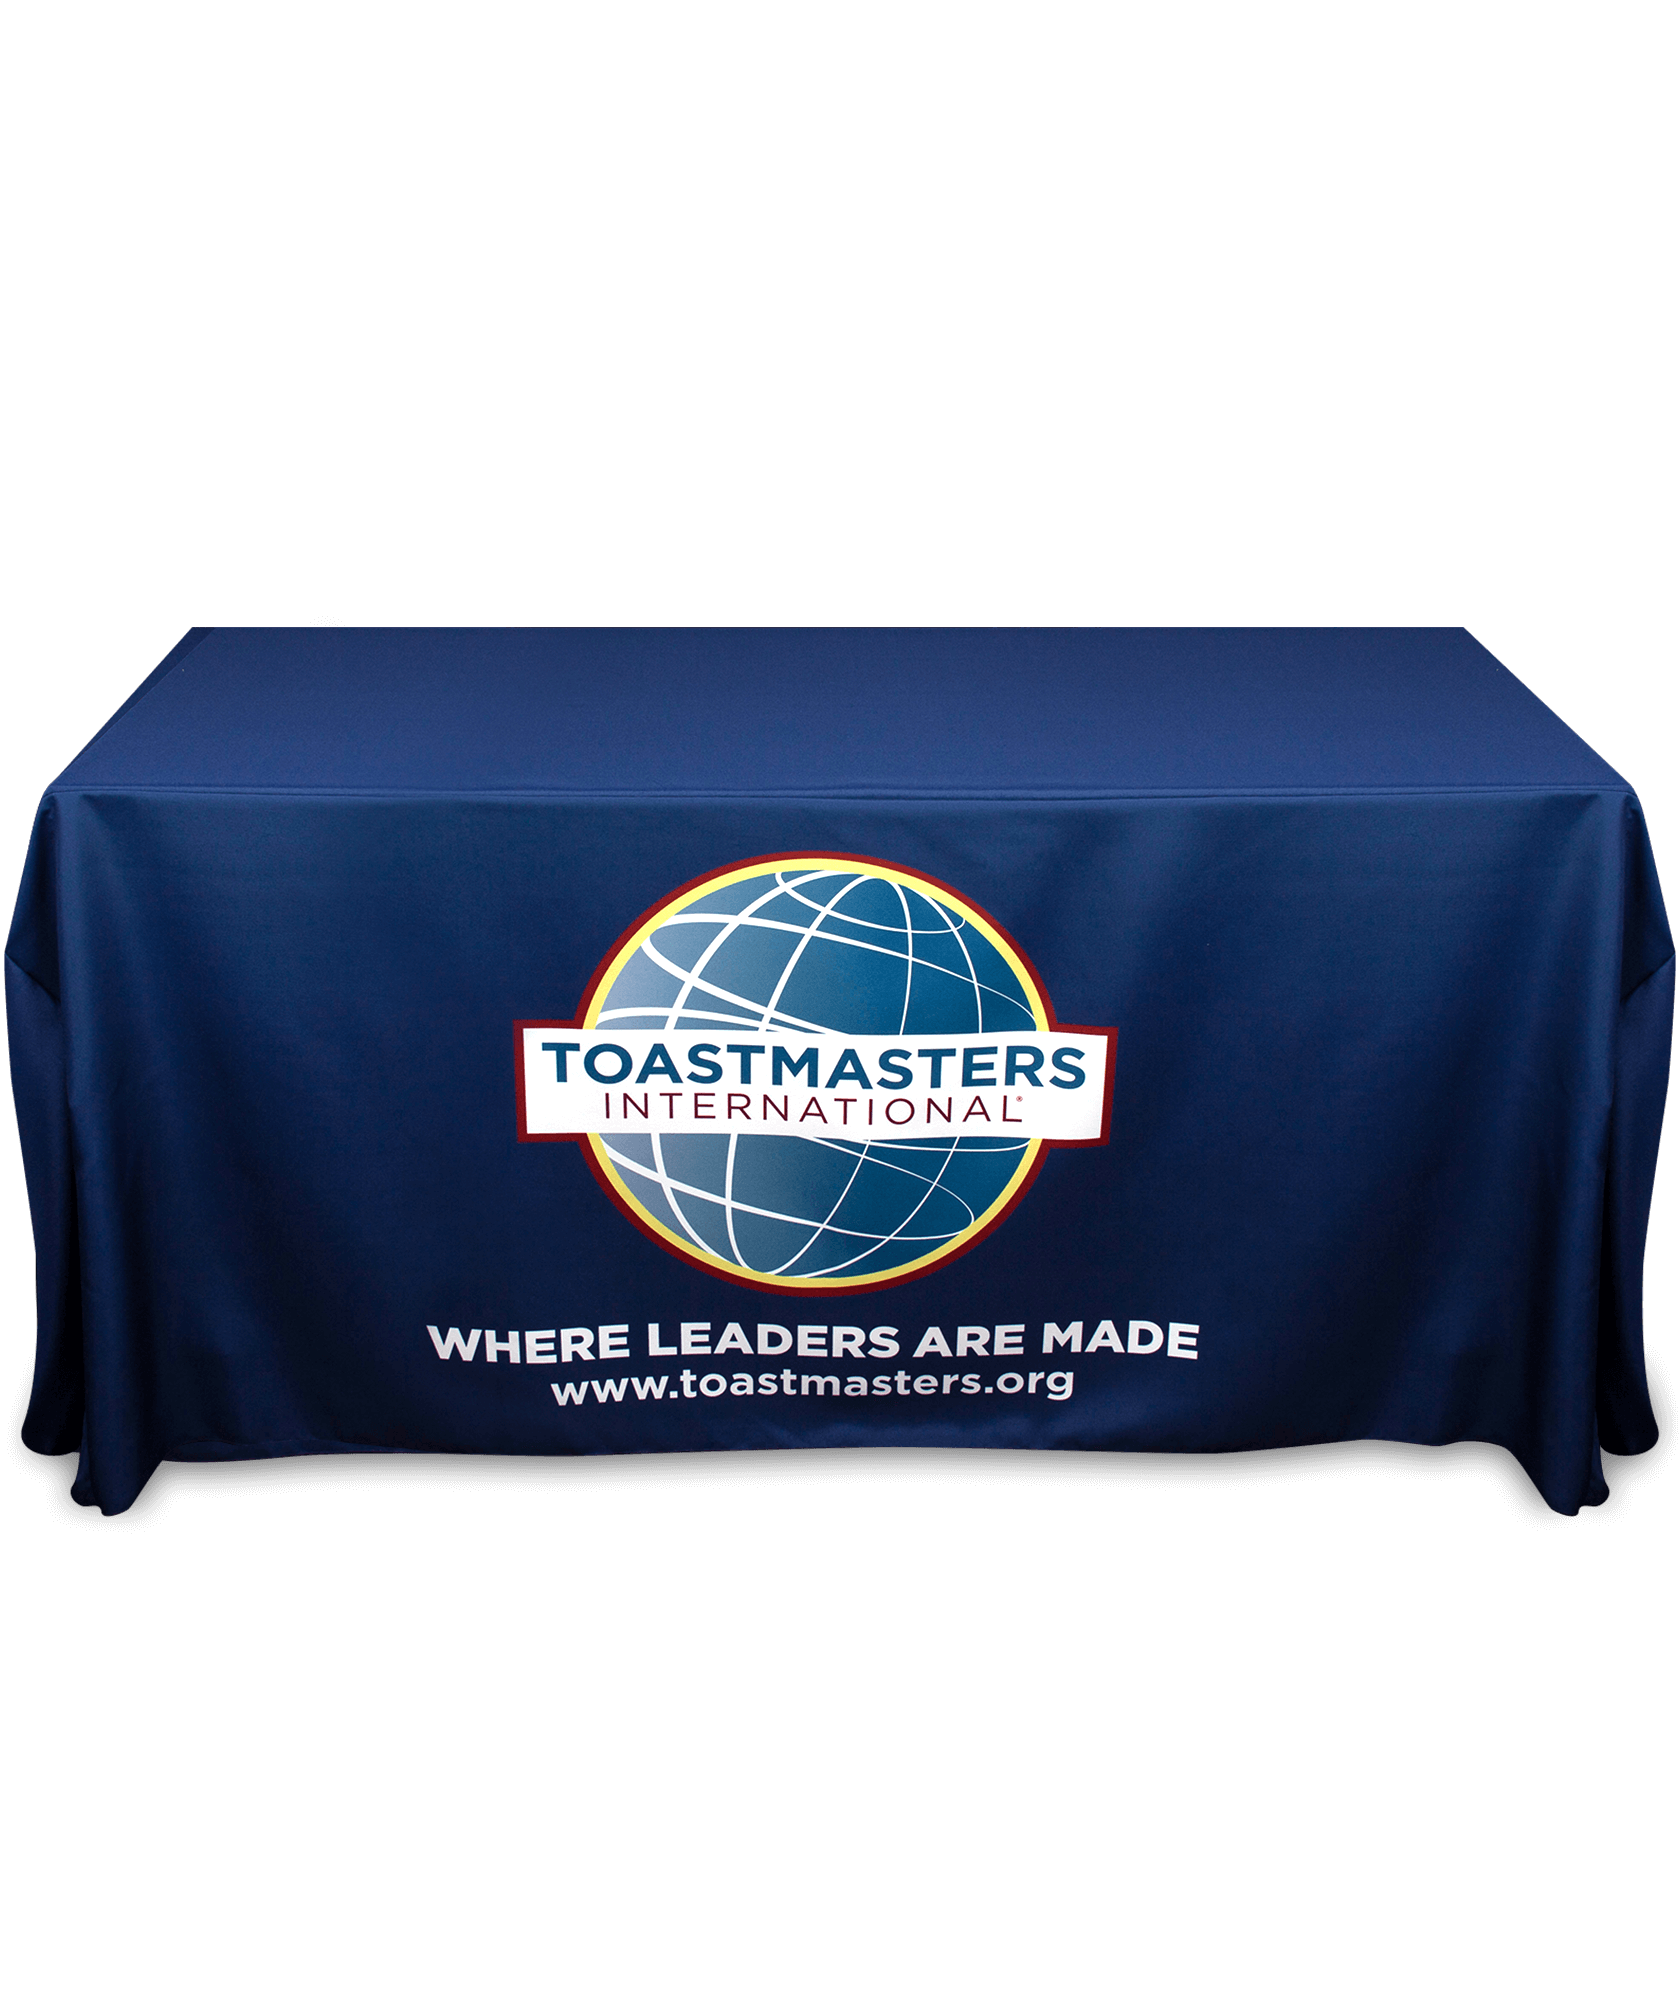 Navy tablecloth with Toastmasters full-color logo, tagline and website